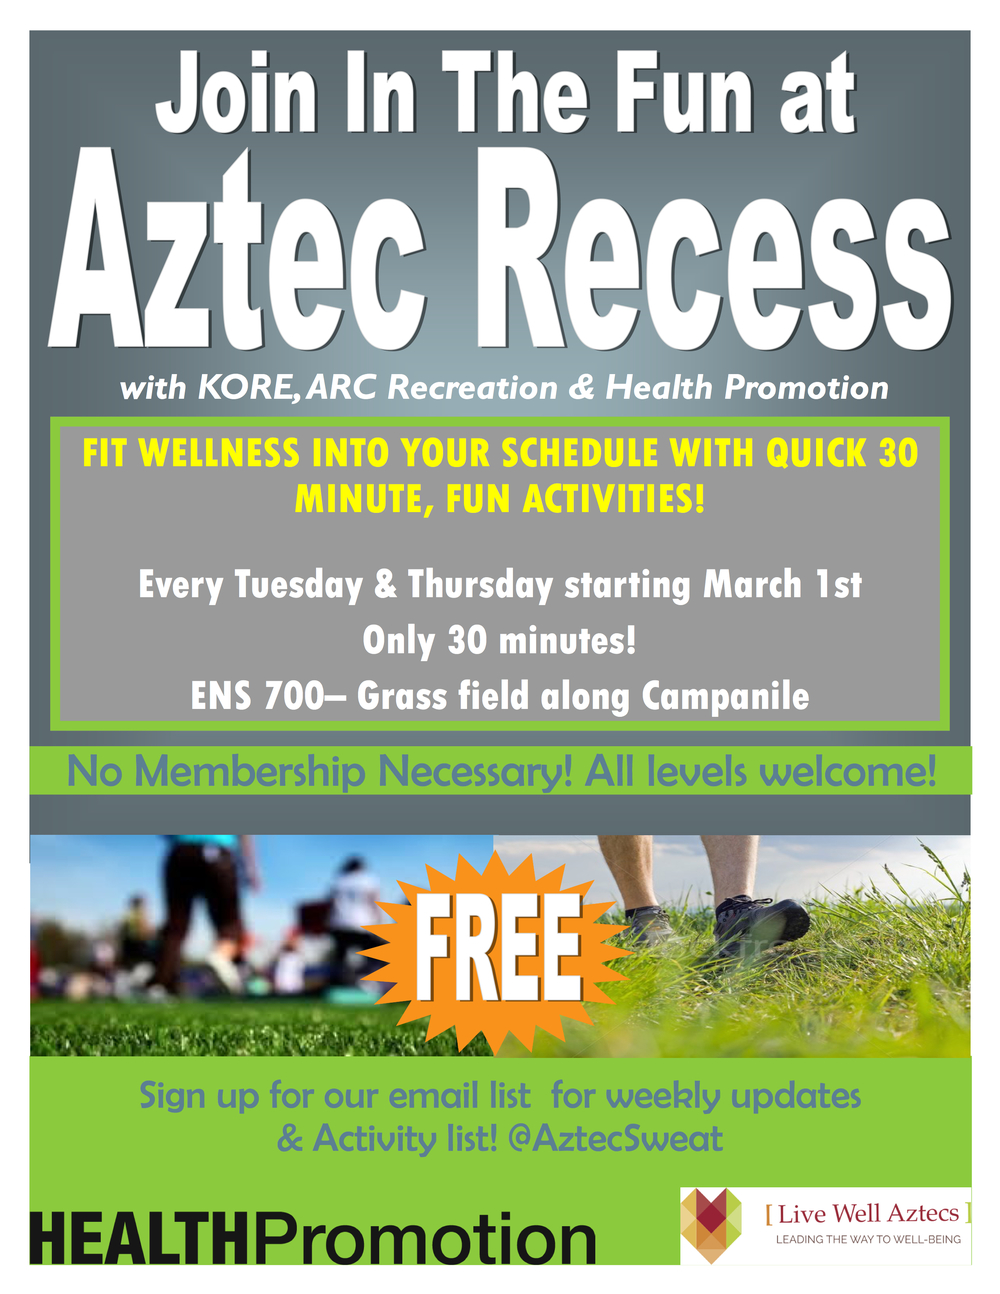 Aztec Recess Flyer